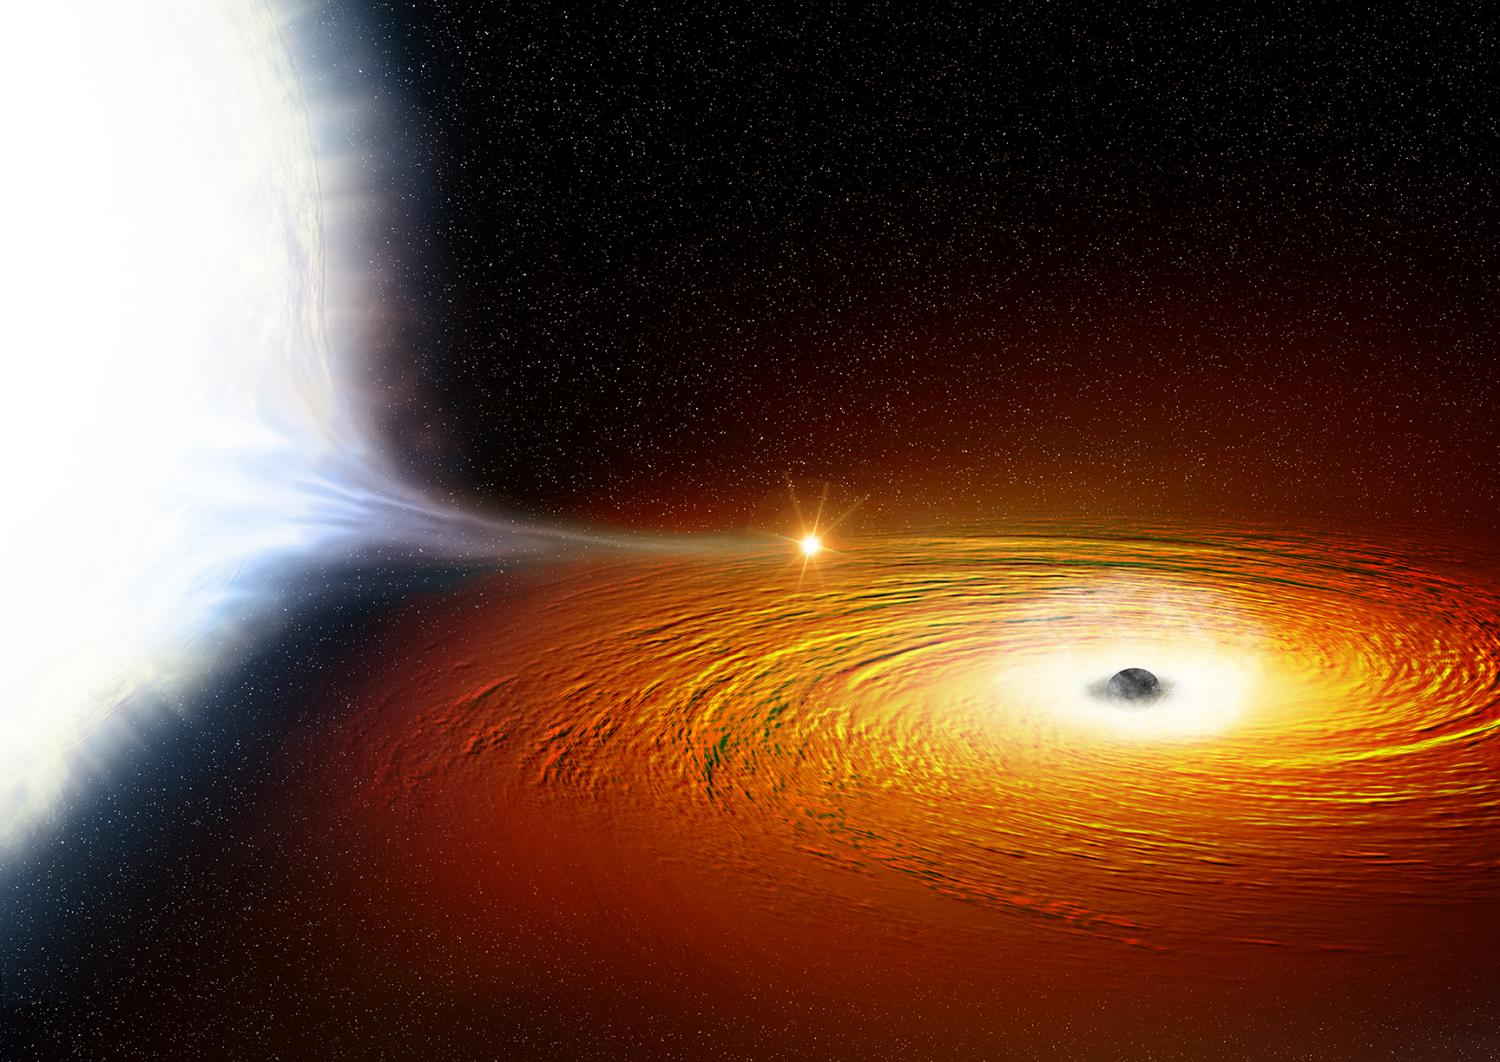 Tiny Star Discovered Orbiting Near Black Hole, Closer Than Any Other